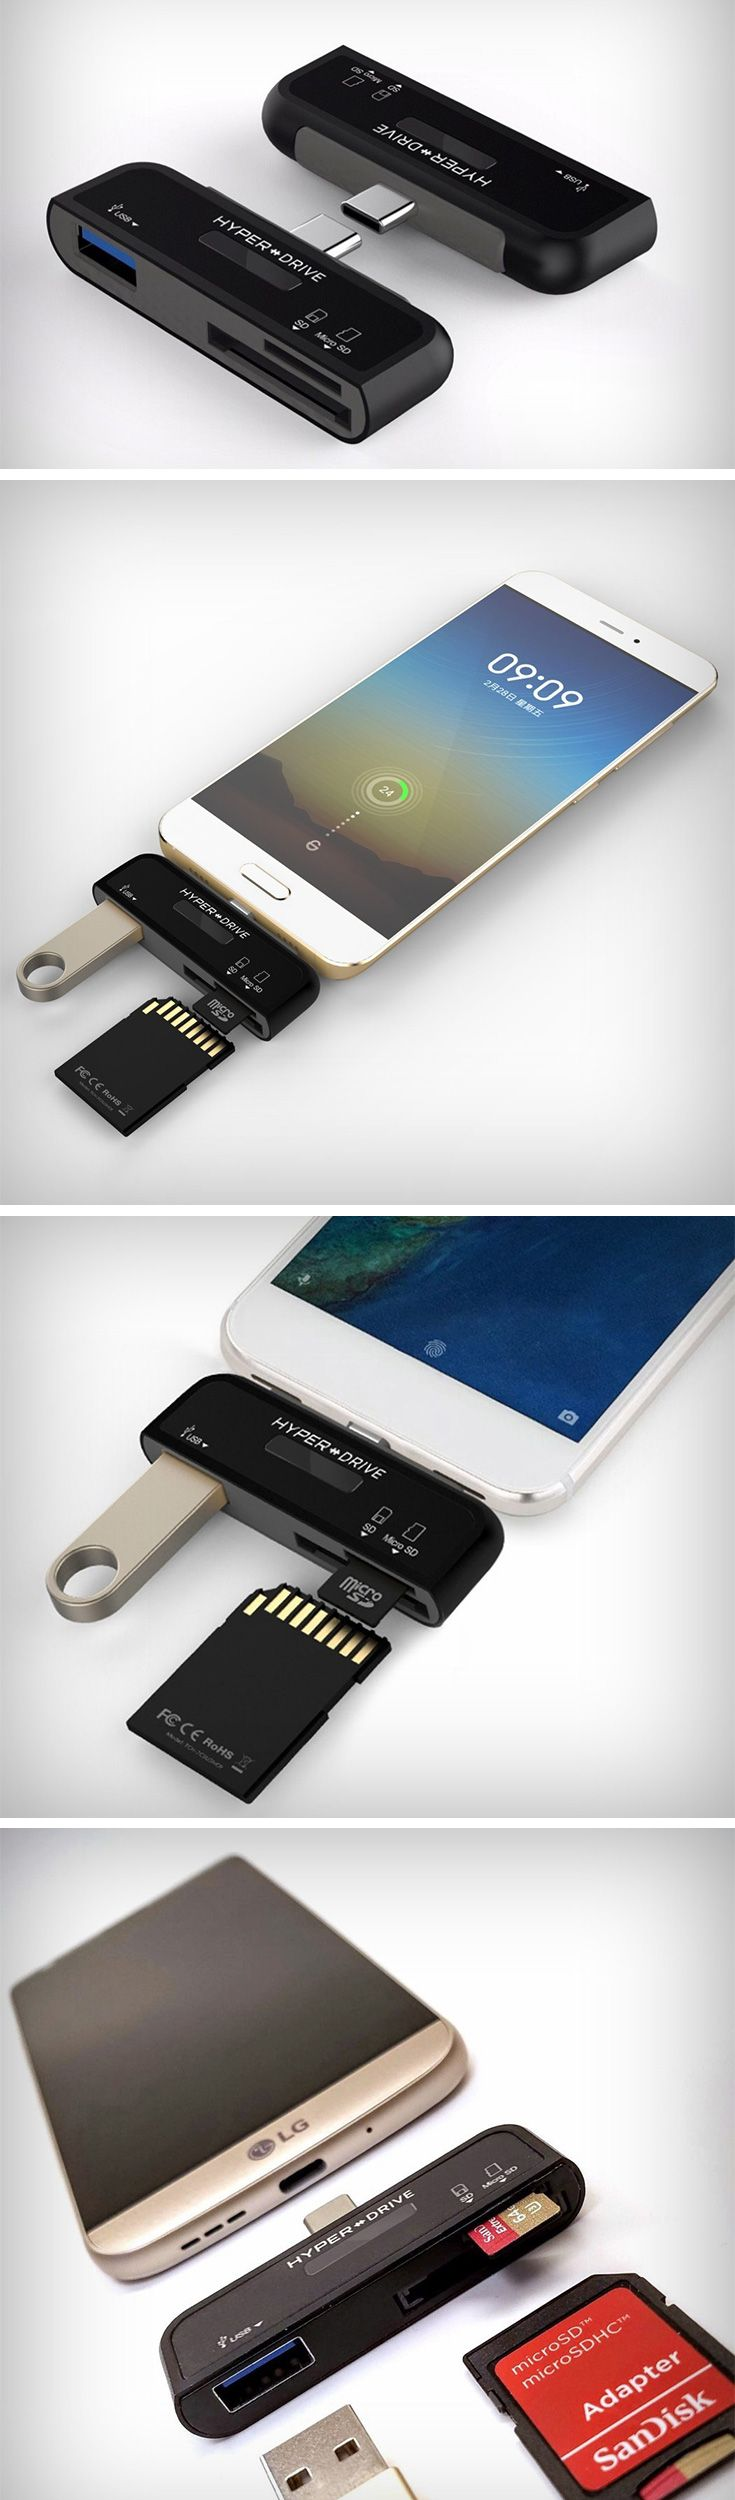 The Hyperdrive Type-C connection kit easily fits in your pocket and expands your phone's possibilities. Plug it in, and you've got a regular USB port, and two card-readers for SD and MicroSD cards. You can now literally plug any USB drive into your phone and either transfer data to it, or retrieve data from it.